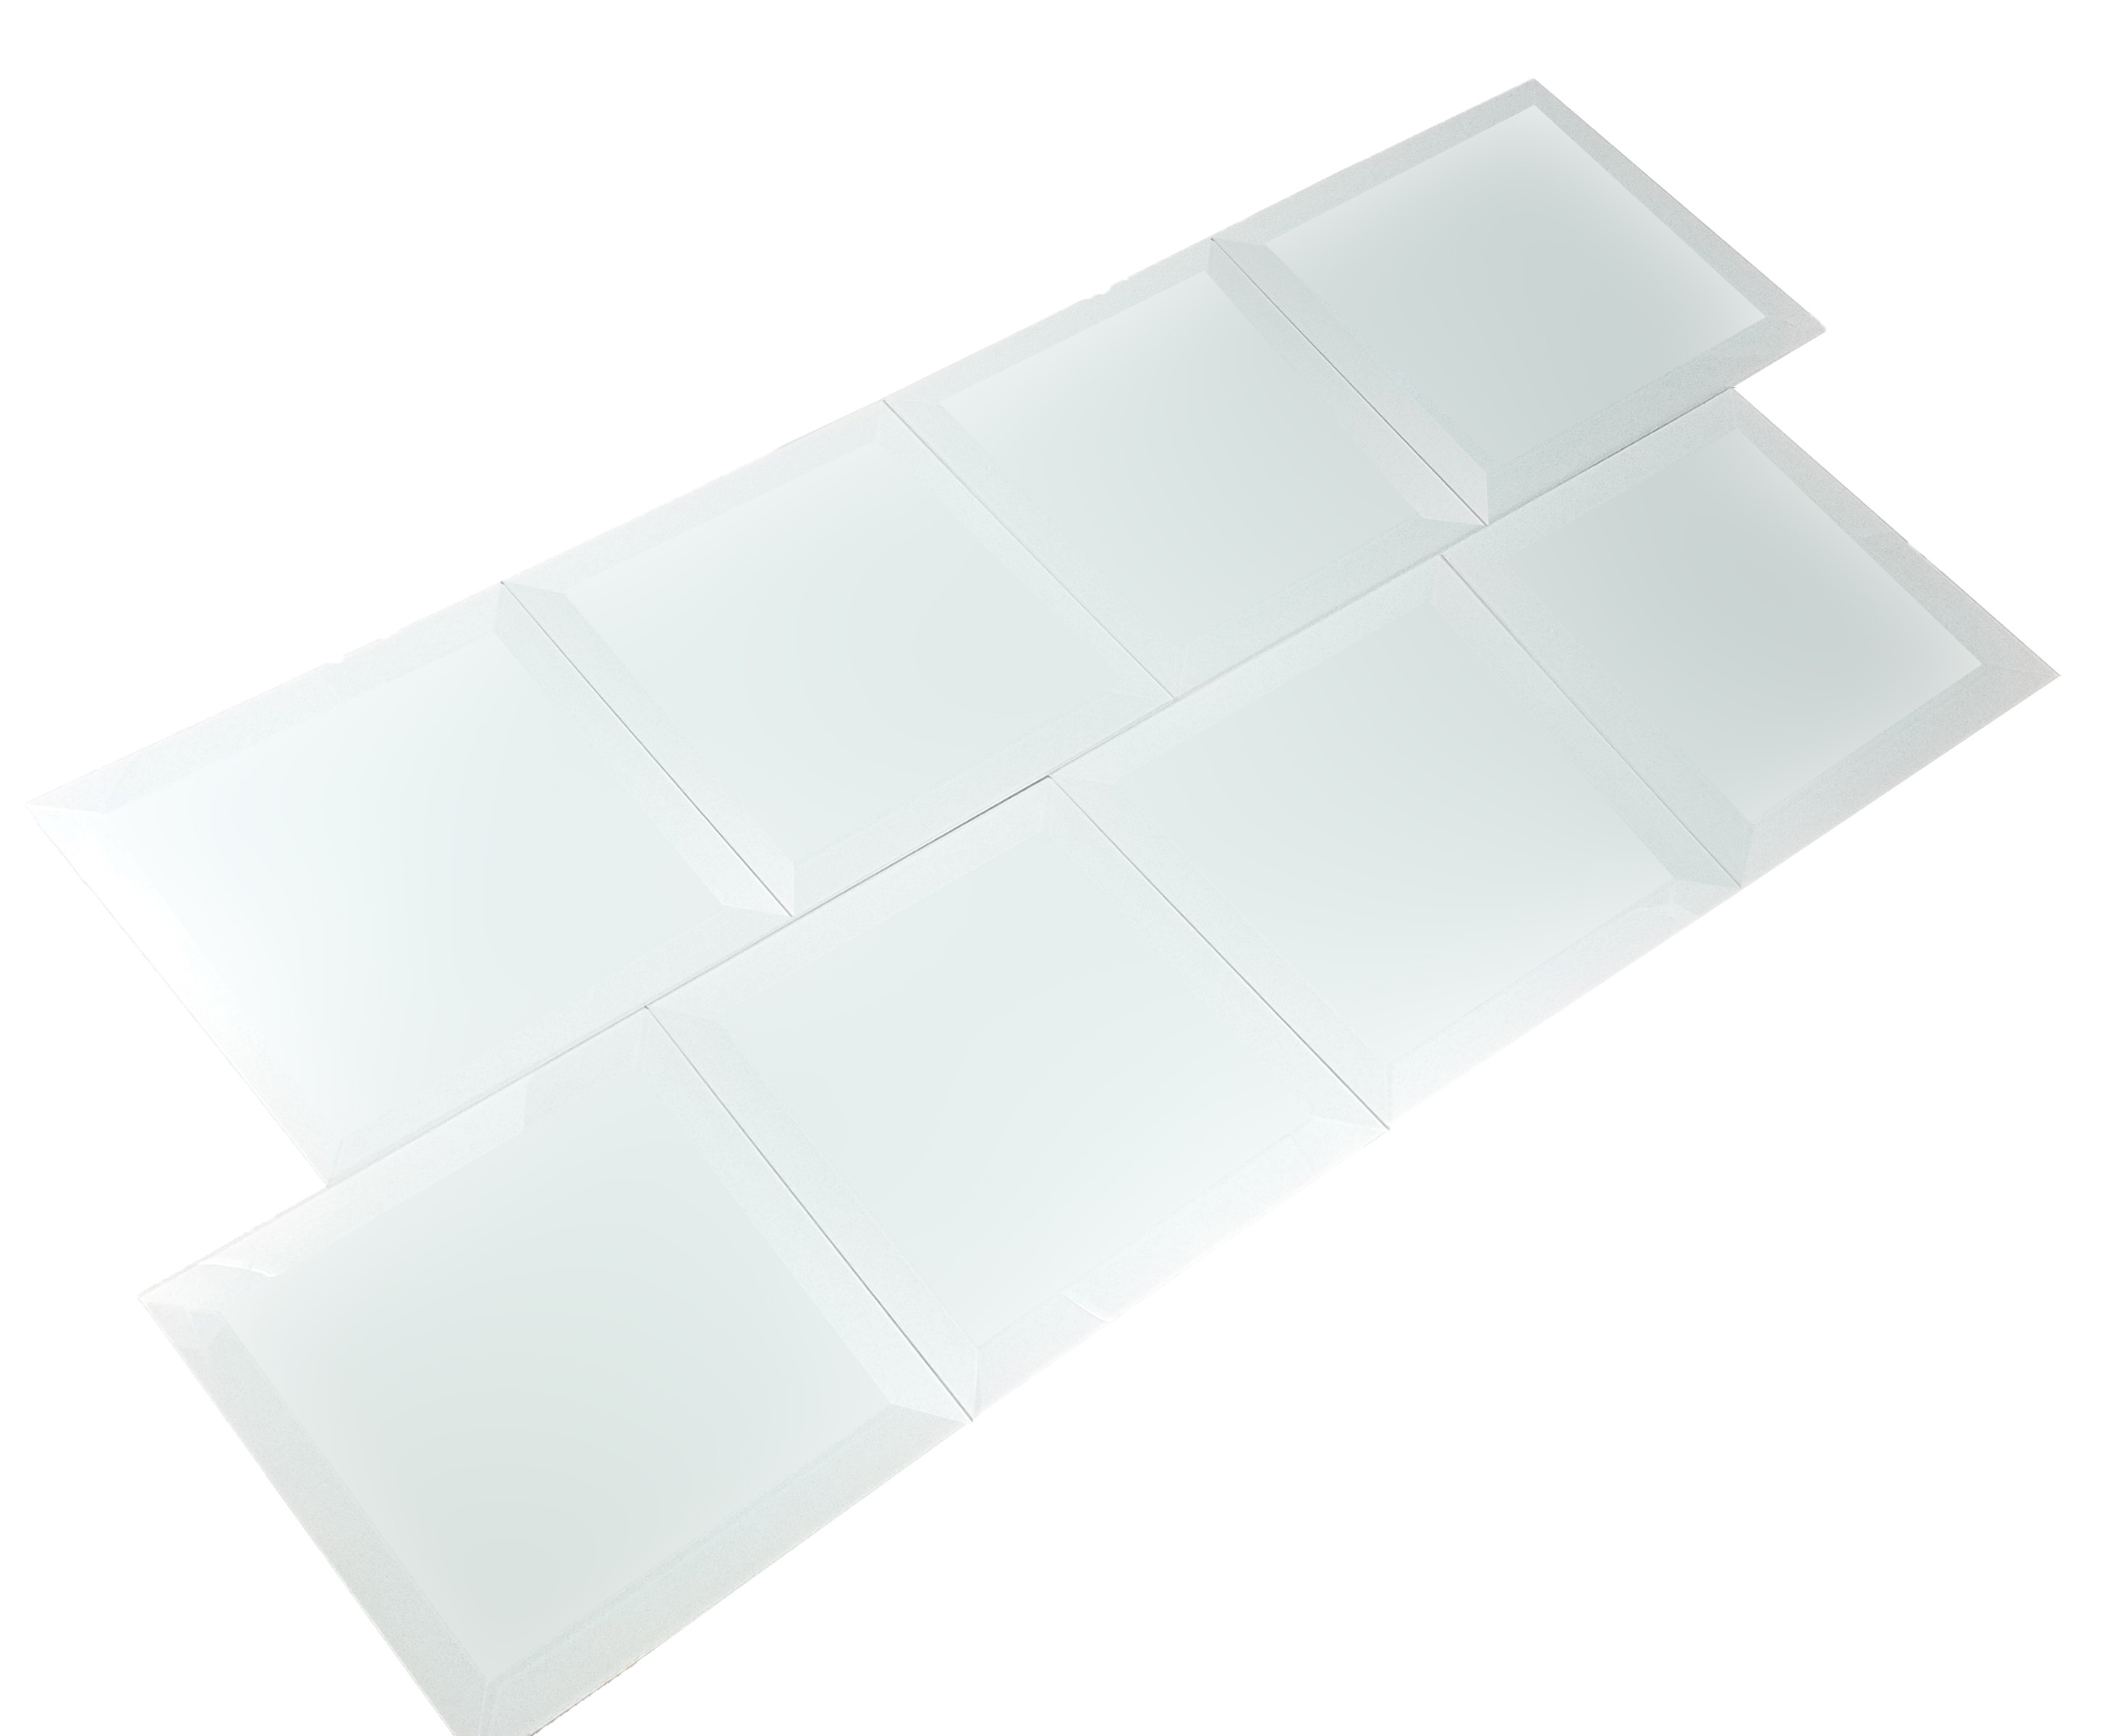 Frosted Elegance 8 in x 8 in Glass Field Tile in MARIE ANTOINETTE Matte